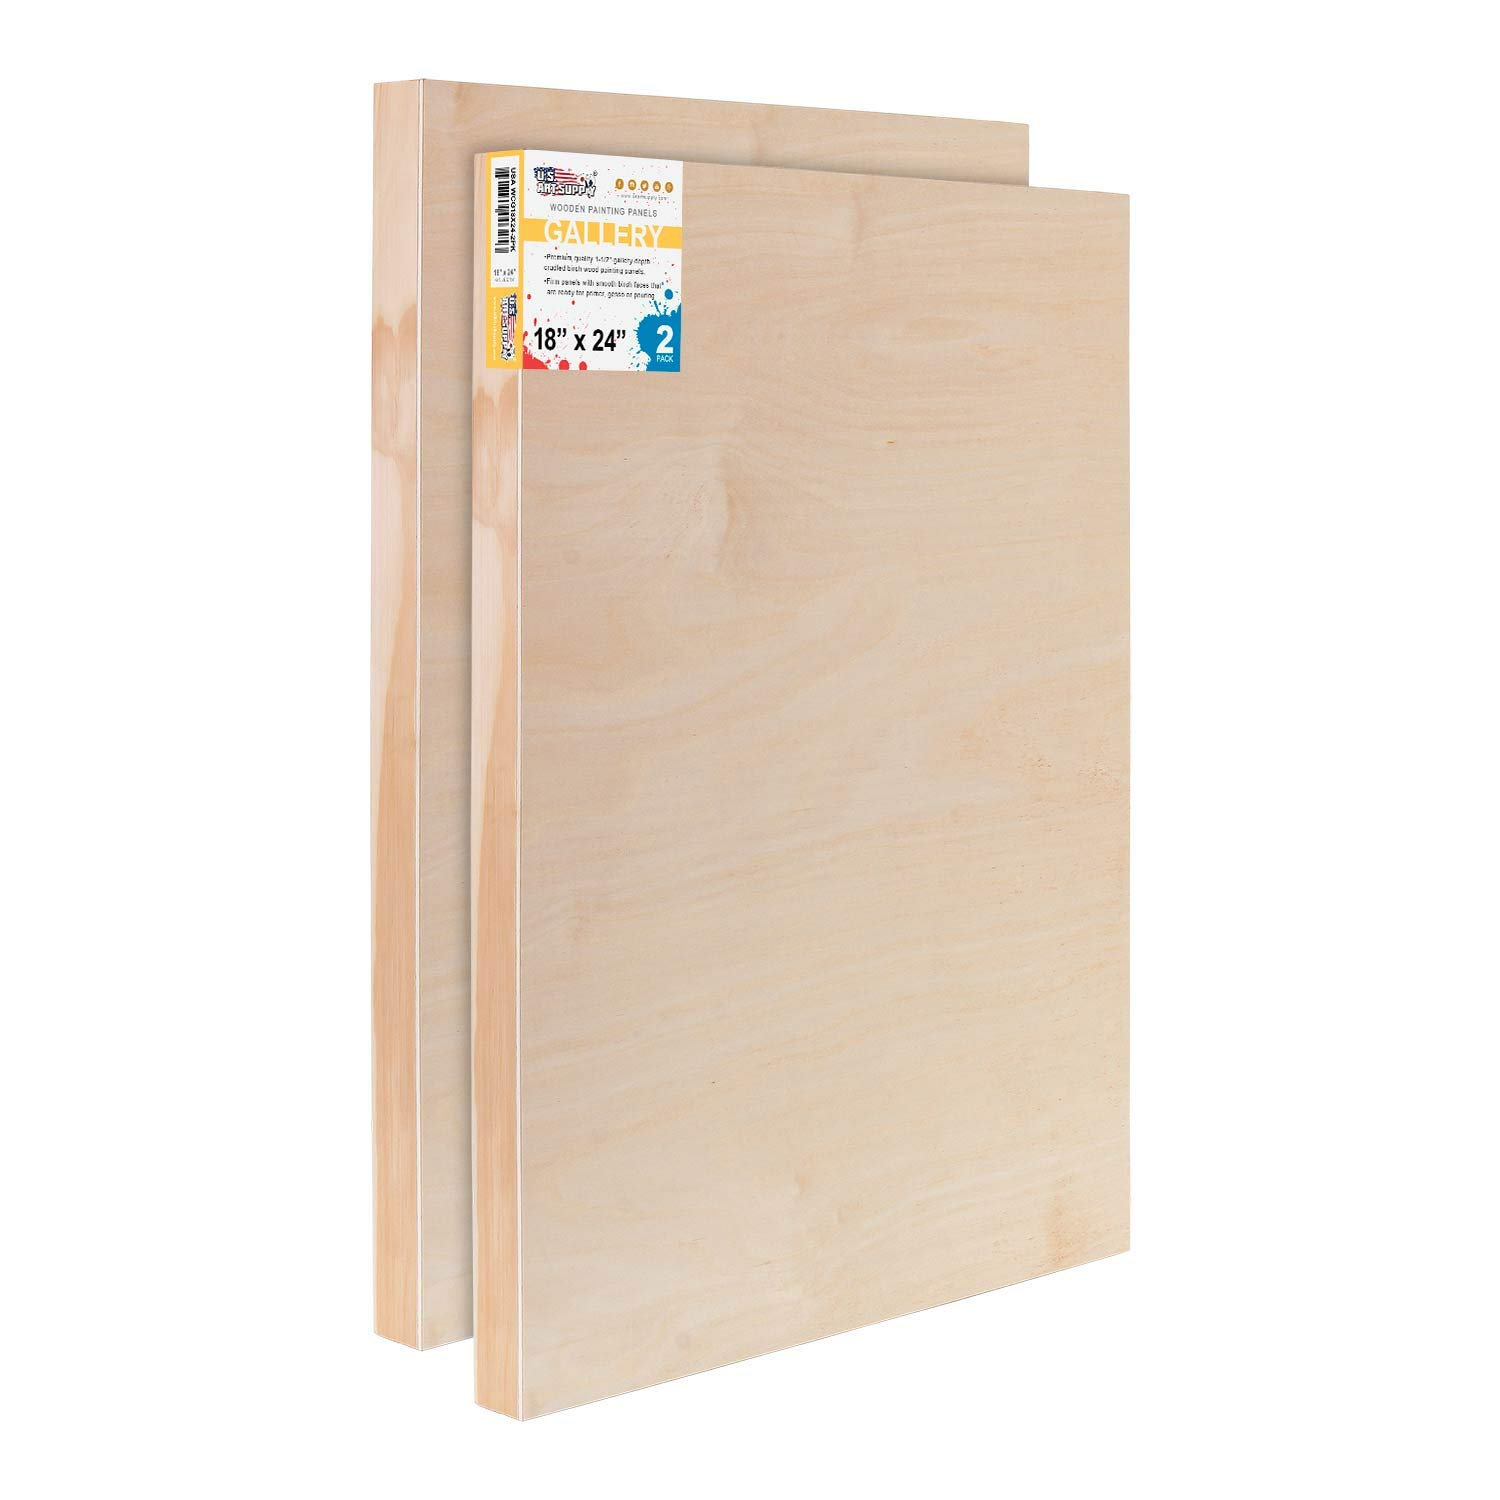 U.S. Art Supply 18'' x 24'' Birch Wood Paint Pouring Panel Boards, Gallery 1-1/2'' Deep Cradle (Pack of 2) - Artist Depth Wooden Wall Canvases - Painting Mixed-Media Craft, Acrylic, Oil, Encaustic by US Art Supply